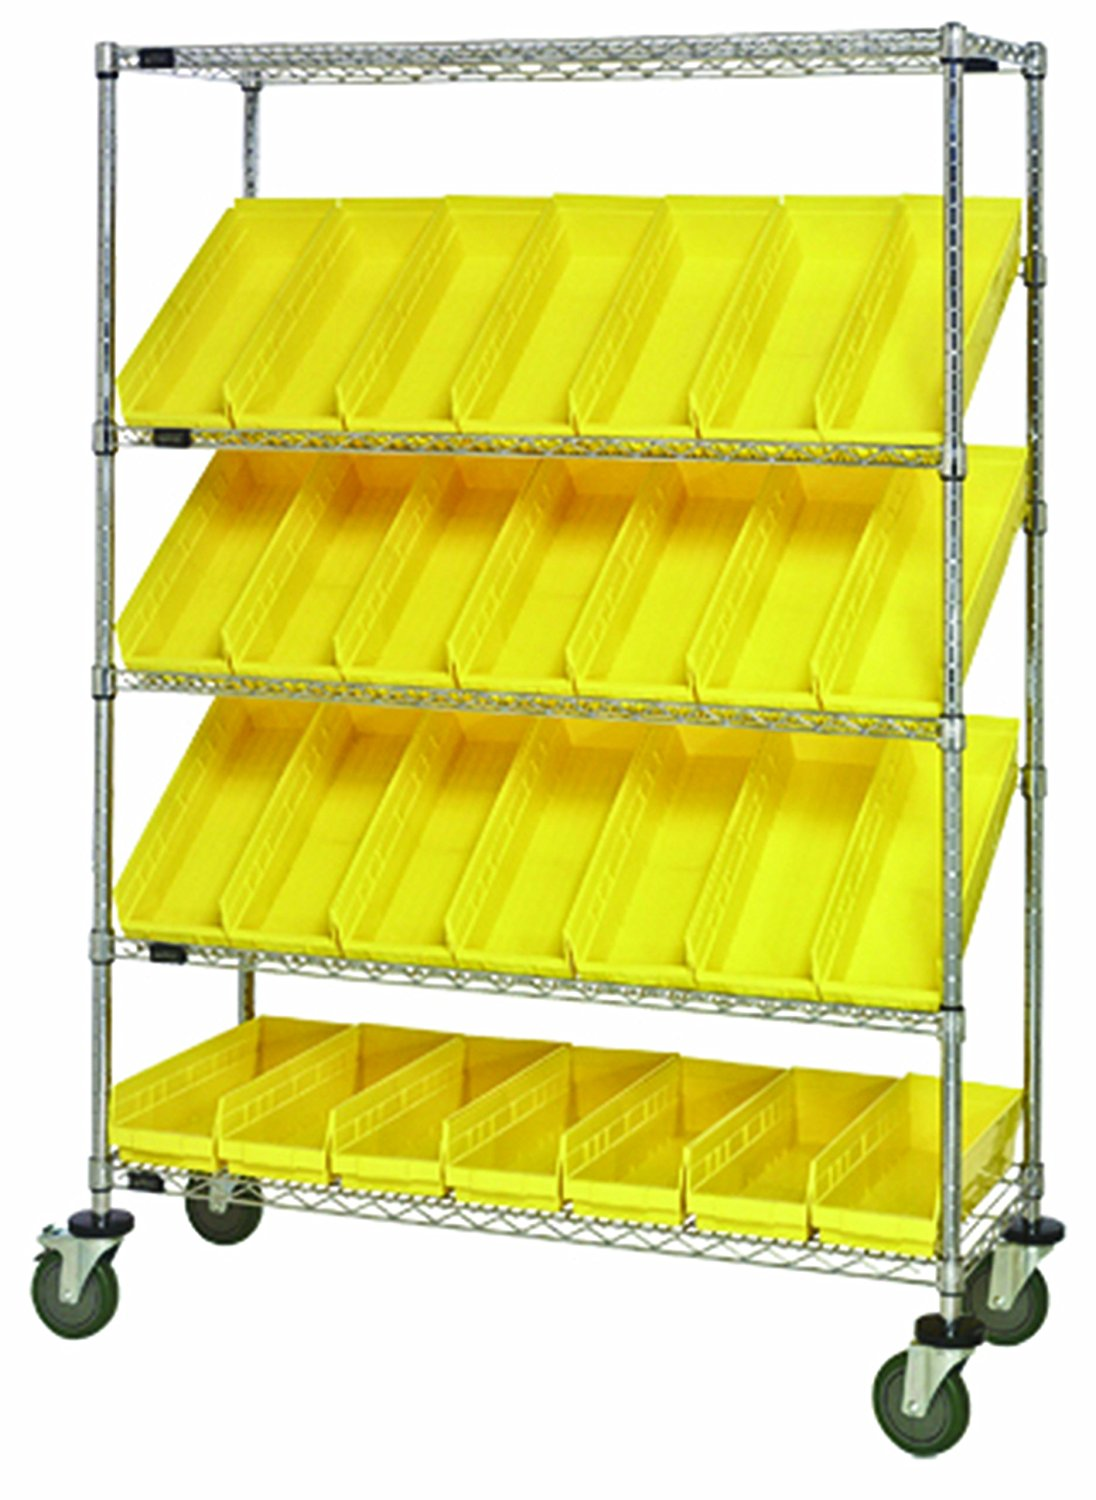 Quantum Storage Systems WRCSL5-63-1836-104IV 5-Tier Slanted Wire Shelving Suture Cart with 20 QSB104 Ivory Economy Shelf Bins 69 Height x 36 Width x 18 Depth Chrome Finish 2 Horizontal and 3 Slanted Shelves